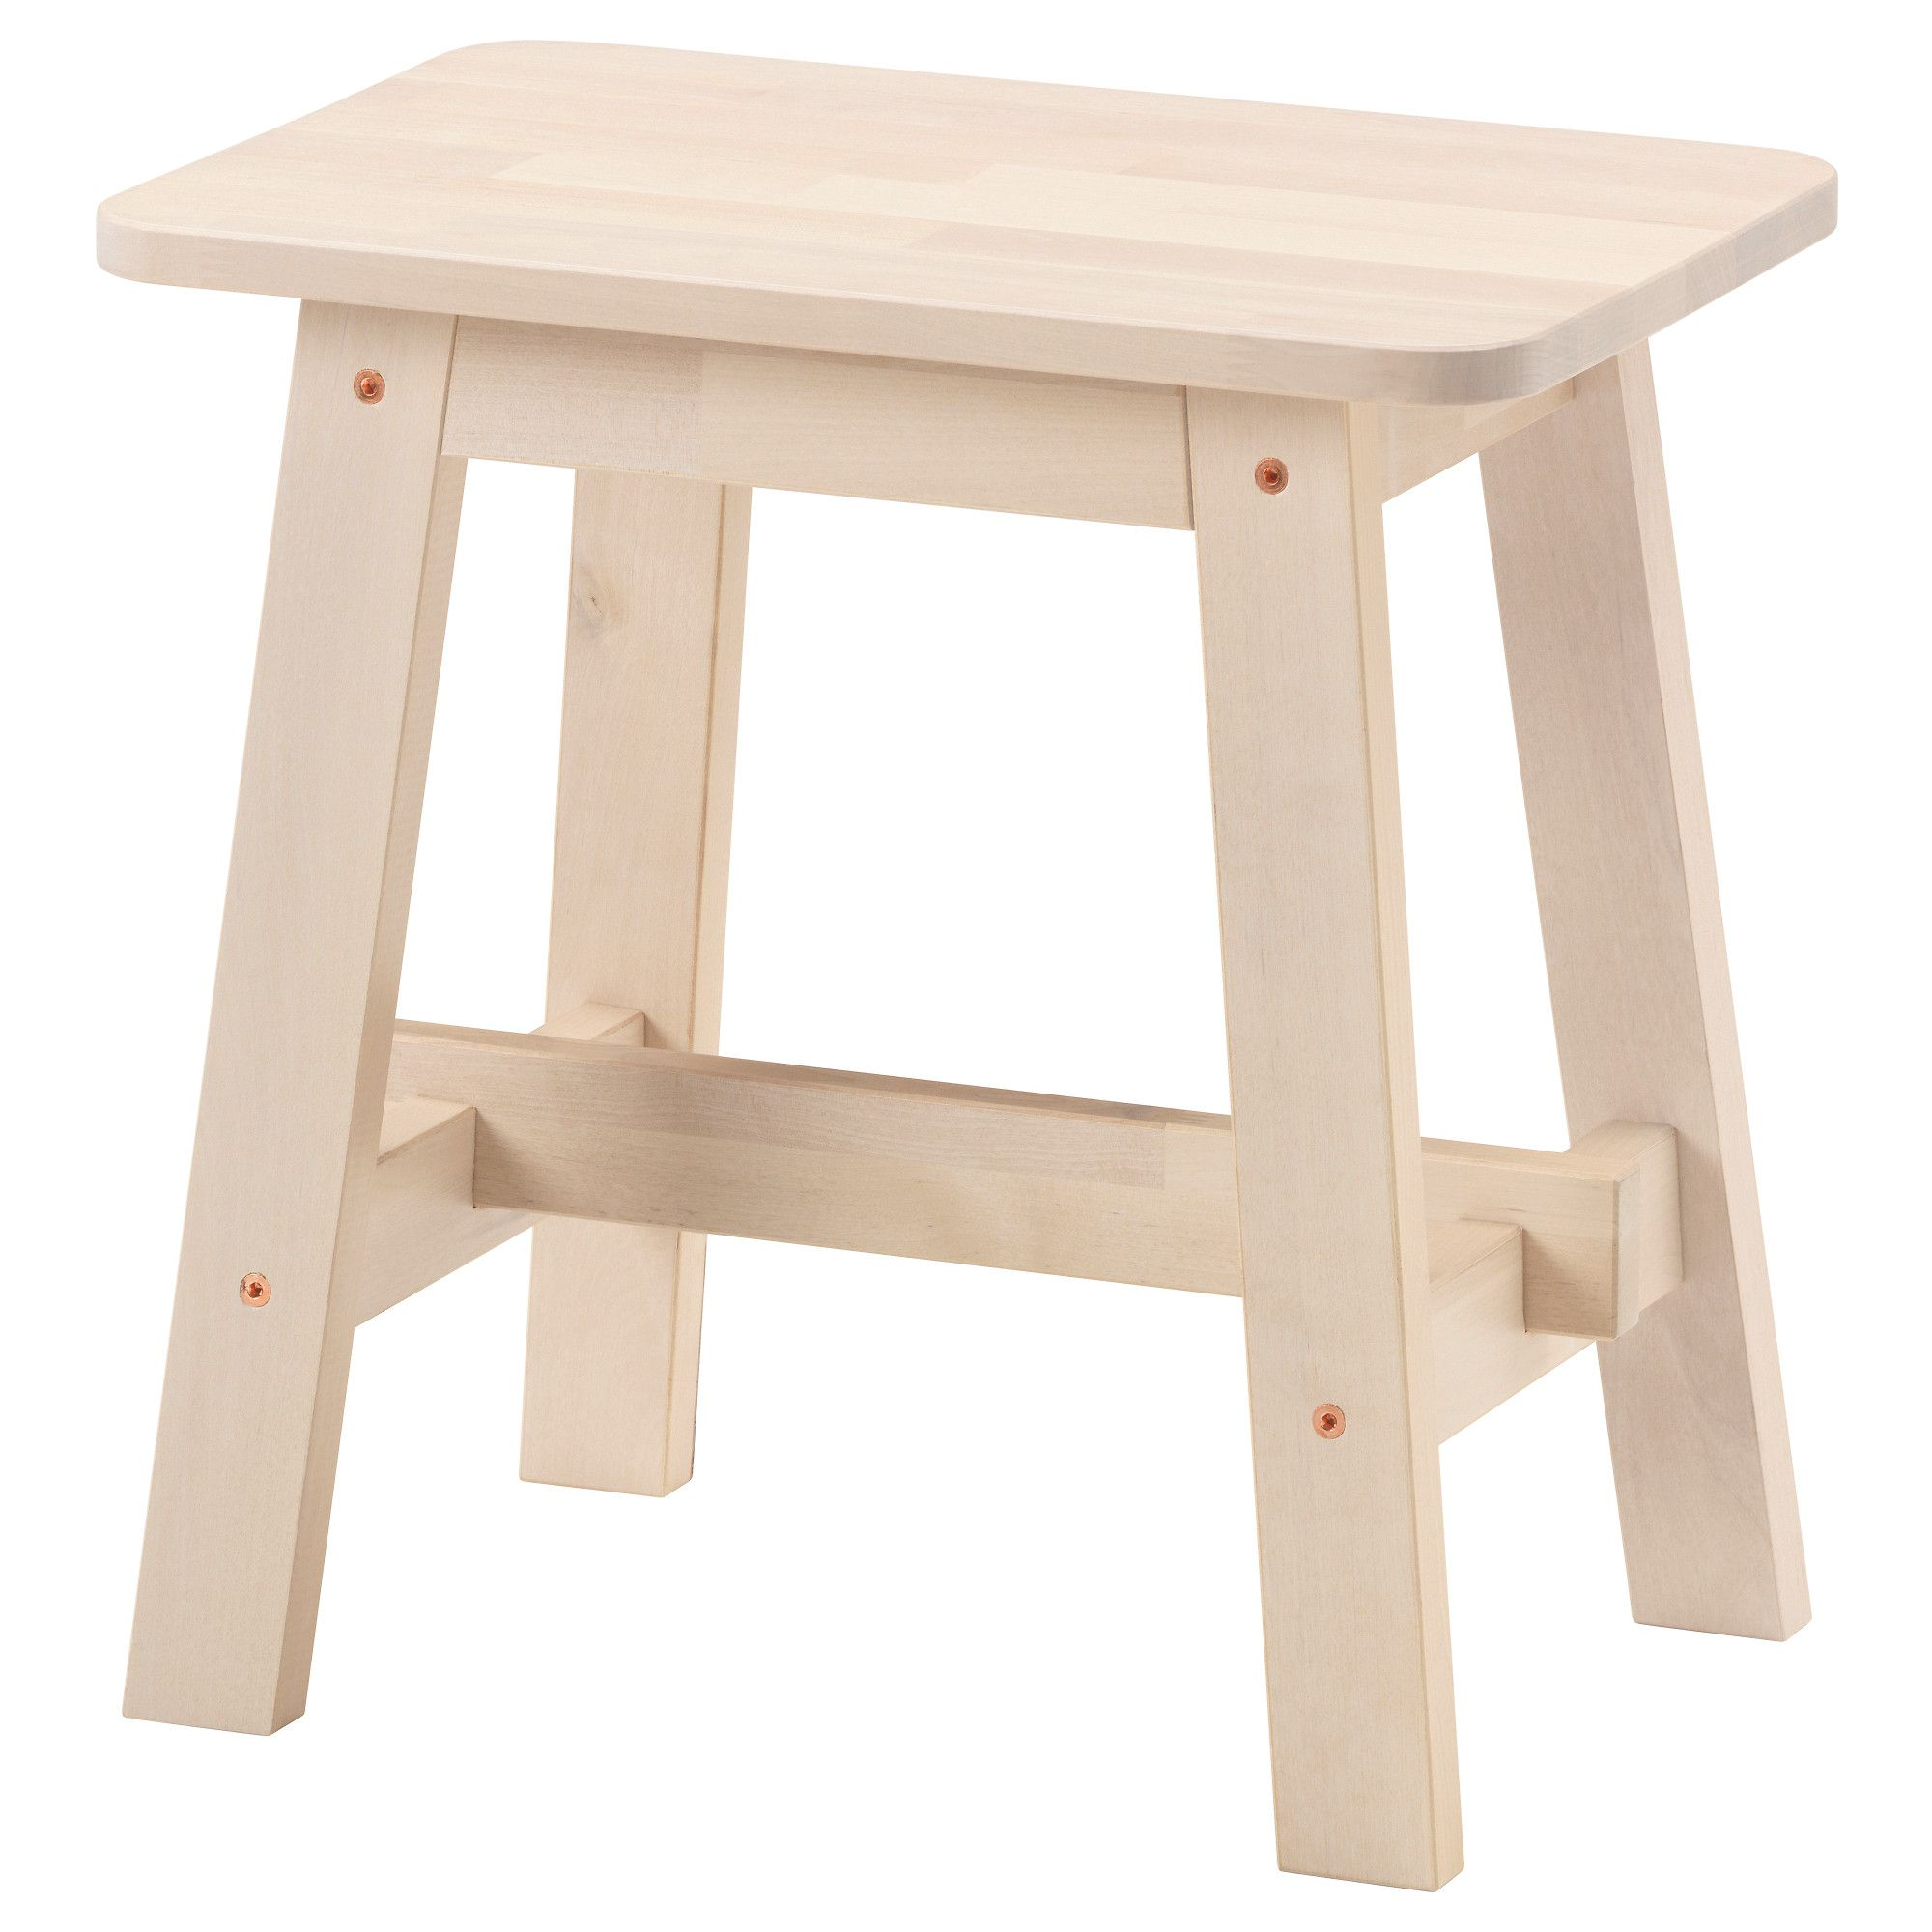 IKEA   NORRÅKER, Stool, Durable And Hard Wearing. Meets The Requirements On  Furniture For Public Use.Less Risk Of Children Hitting Their Head As The  Stool ...